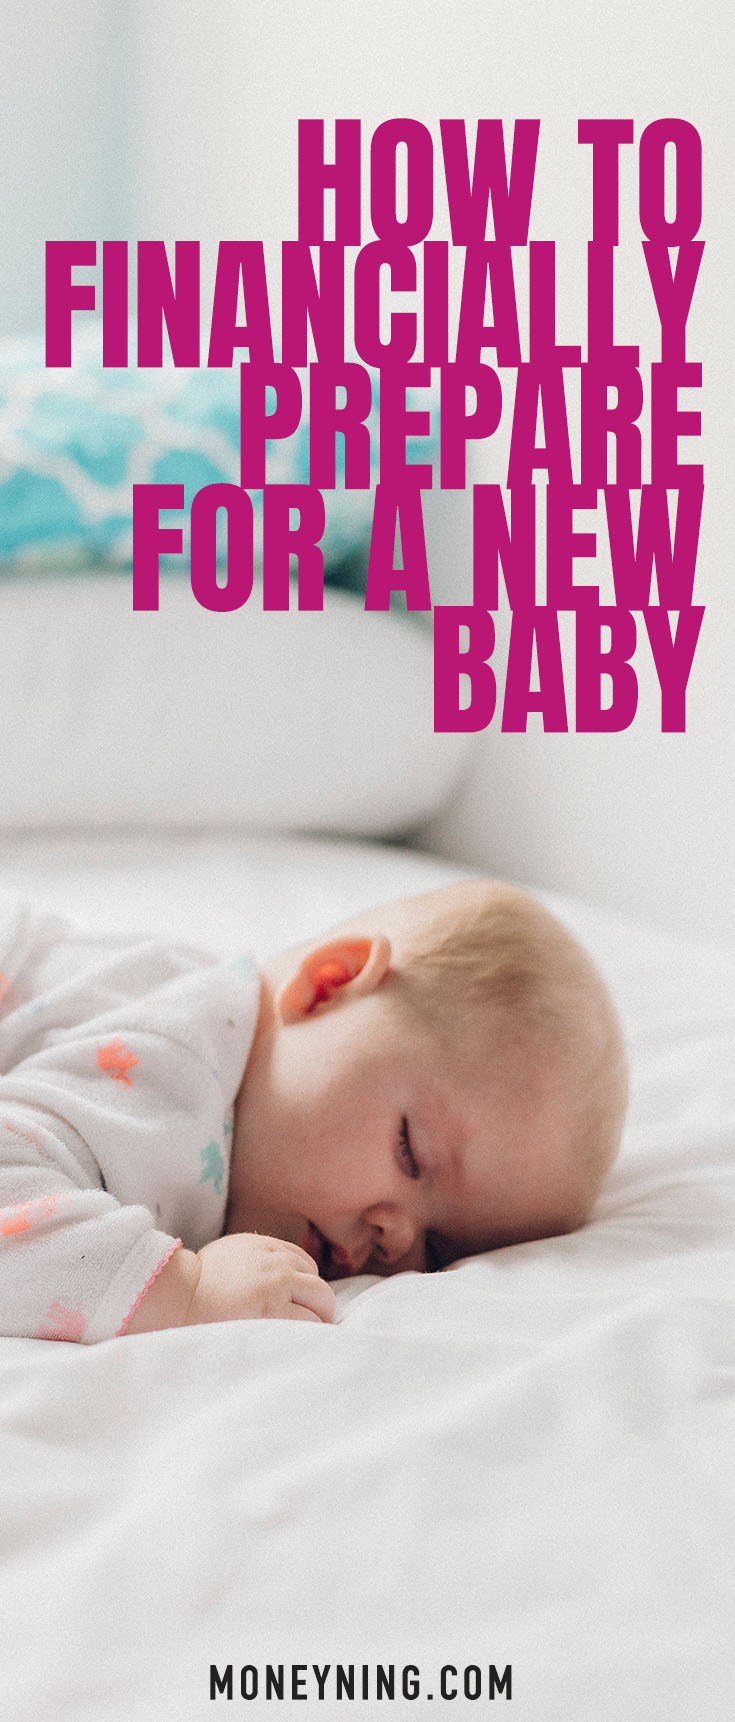 financially prepare for a new baby